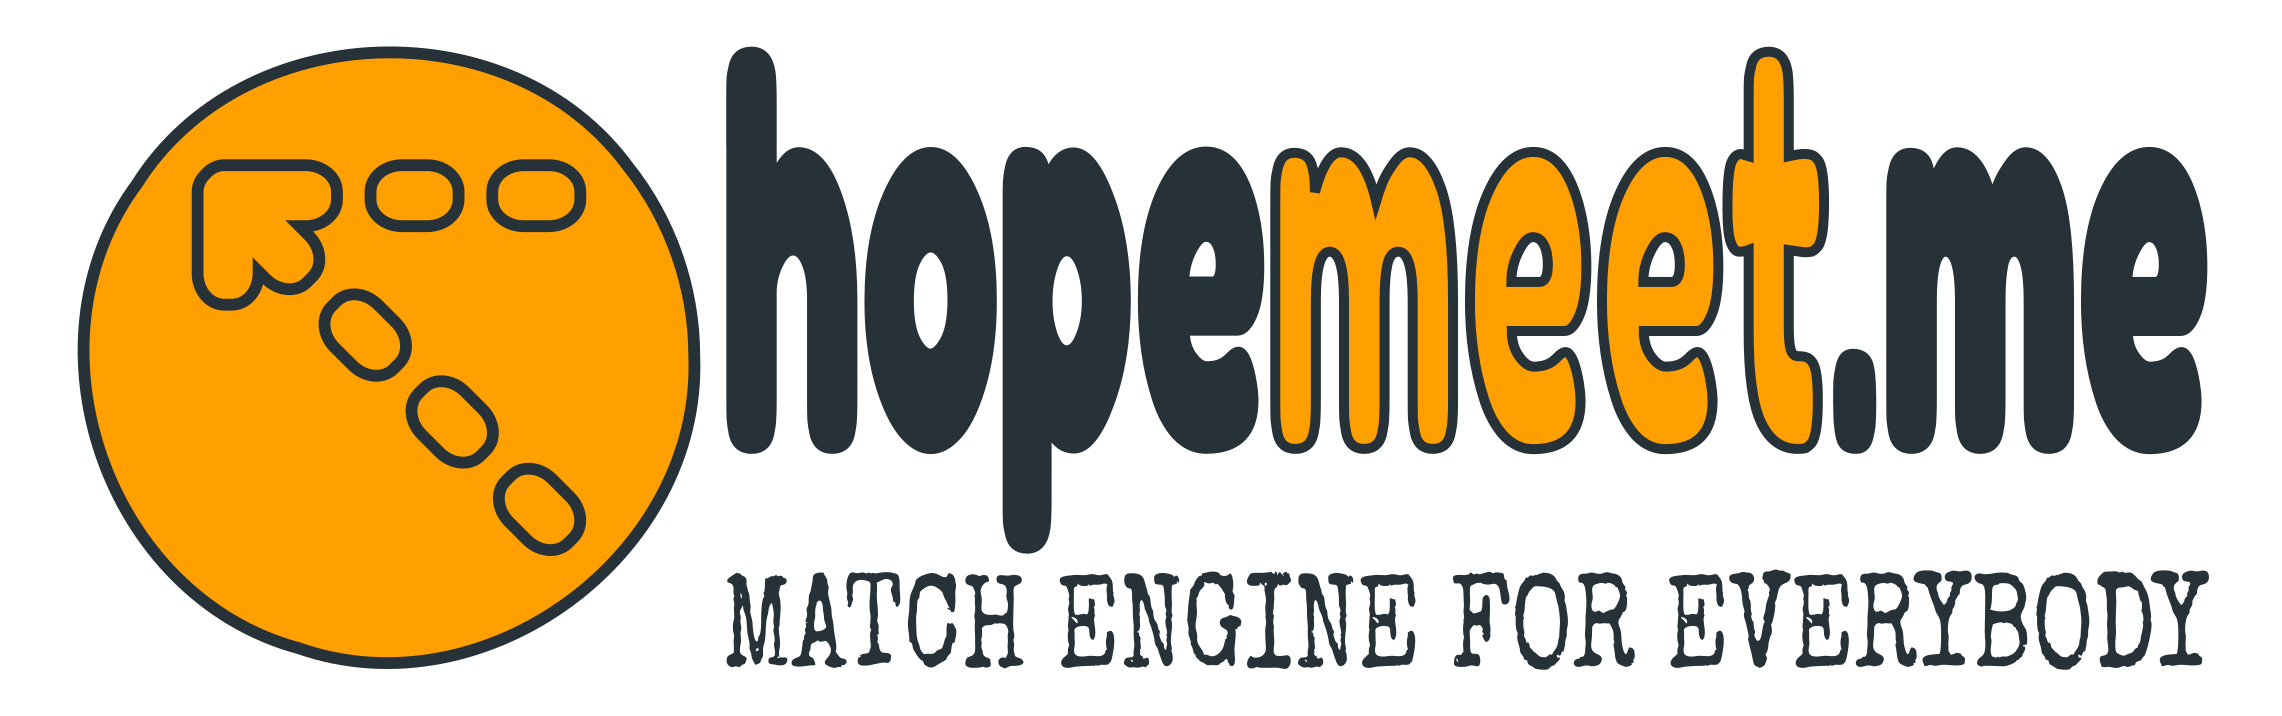 Hopemeet match engine logo; hopemeet.me - match engine for everybody